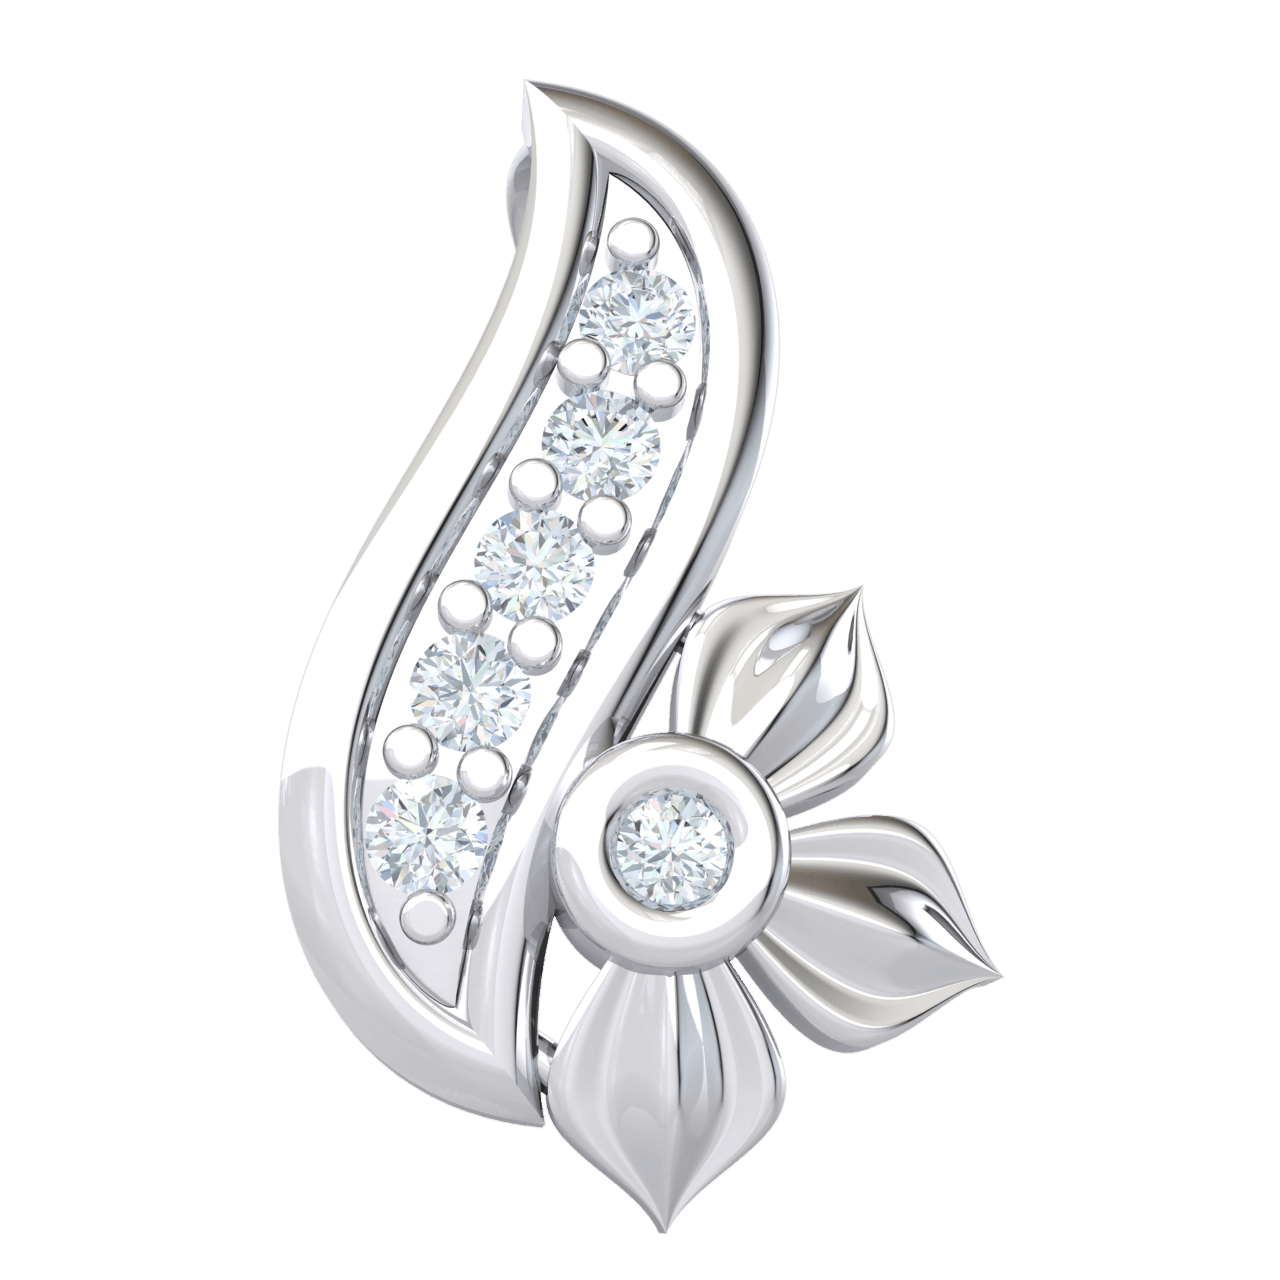 0.04 Ct JK I1 This Extremely Elegant Real Pendant Is Beautifully Crafted With 3 Leaf Flower And Stem Encrusted With White Diamonds in 10 kt Gold